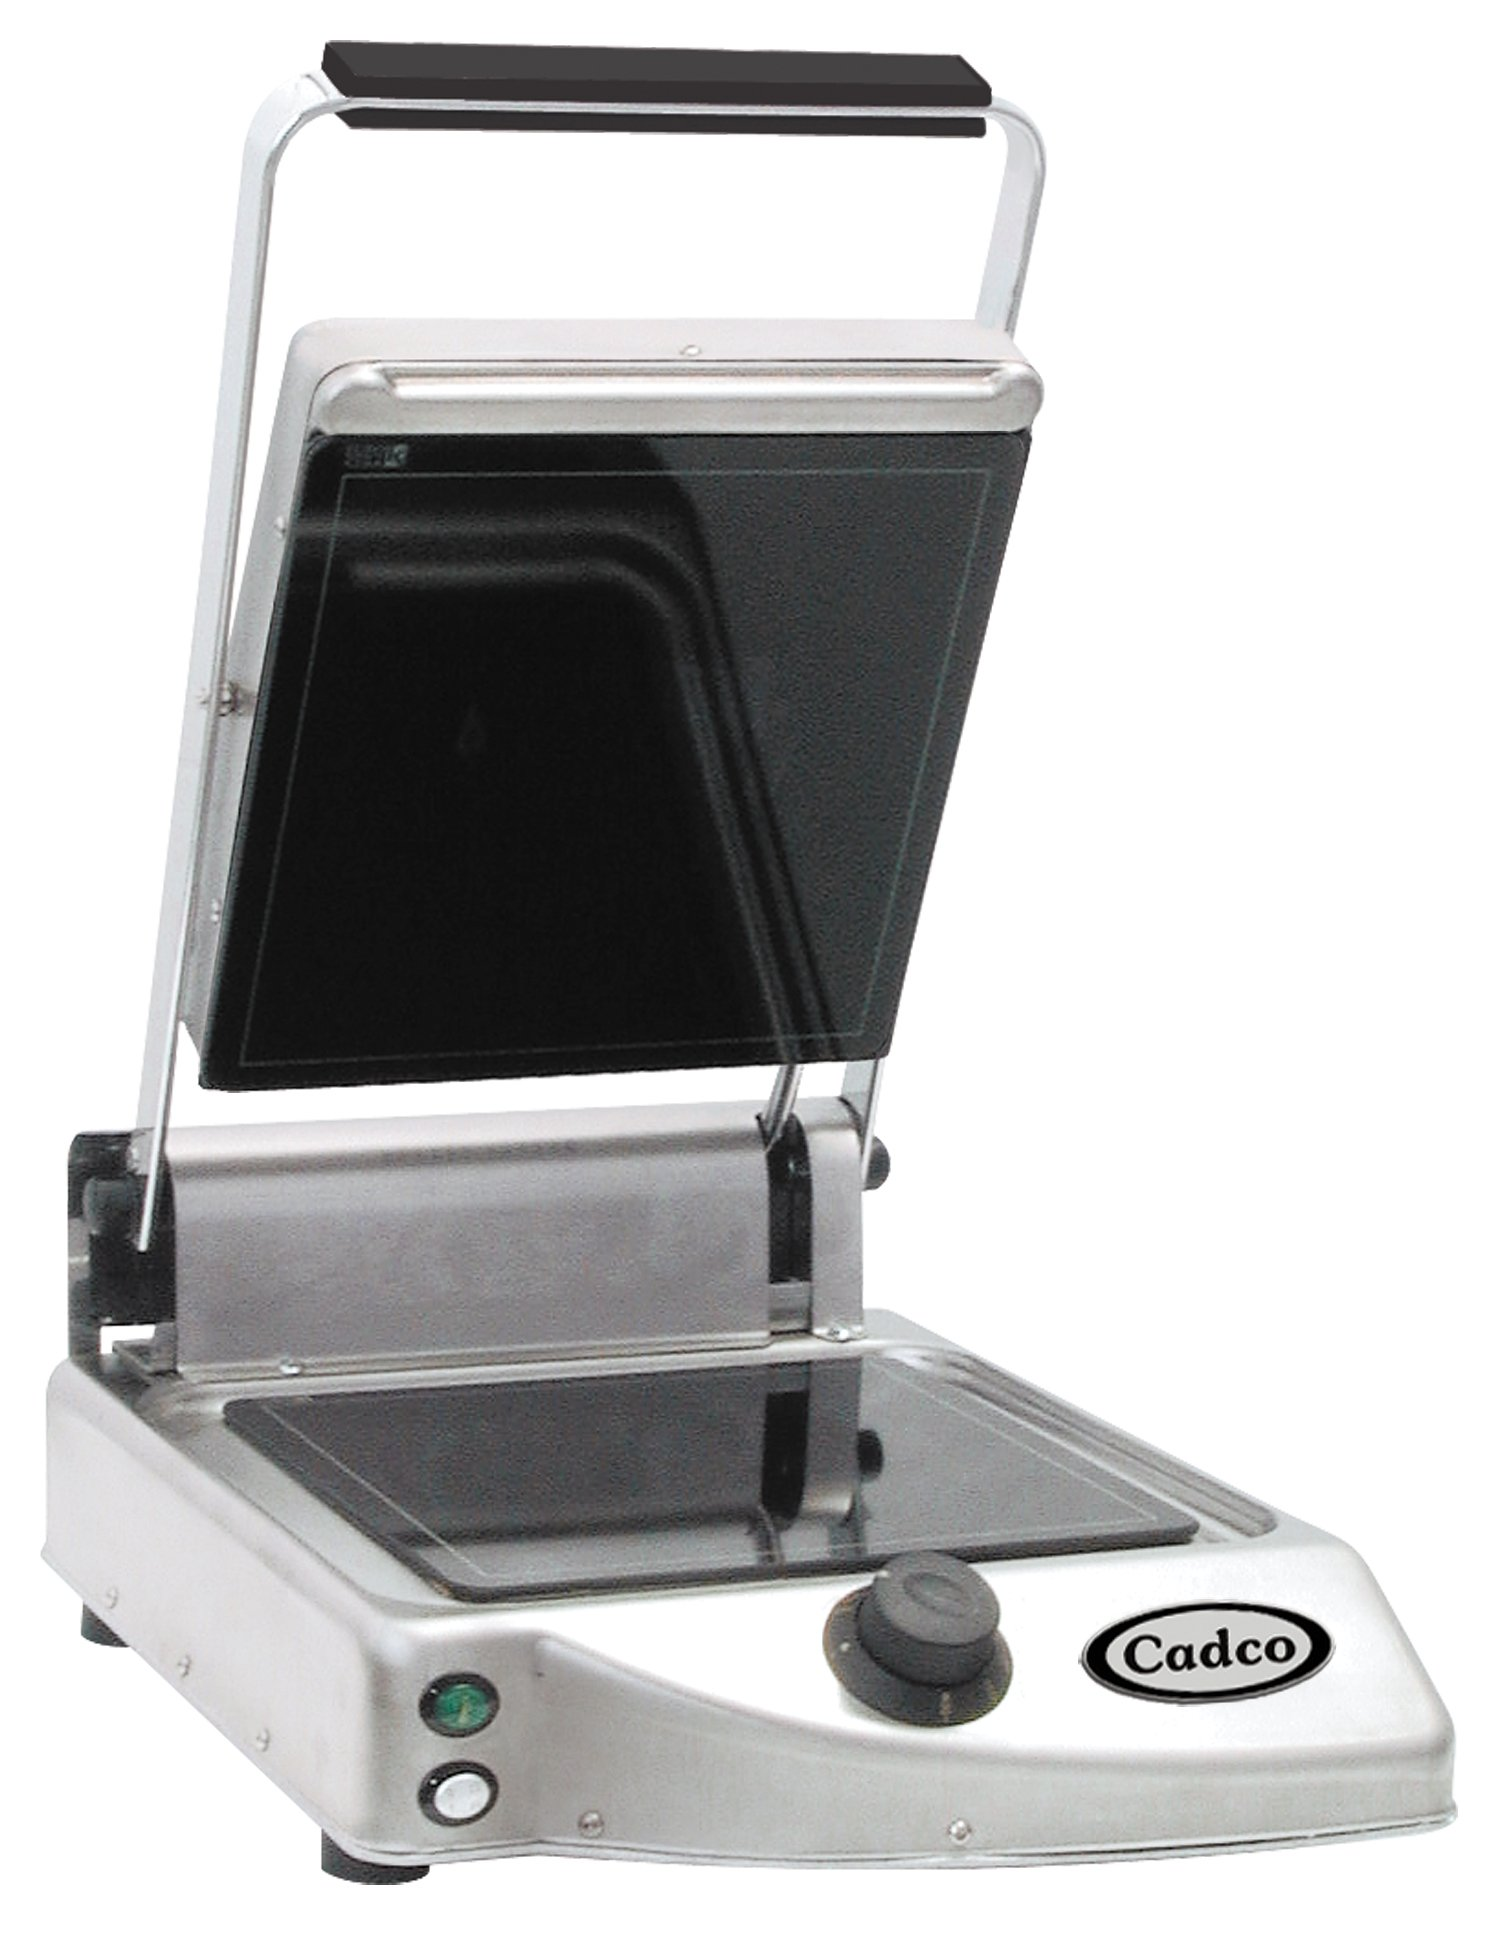 Cadco Single Panini/Clamshell 120-Volt Grill with Smooth Top Plate